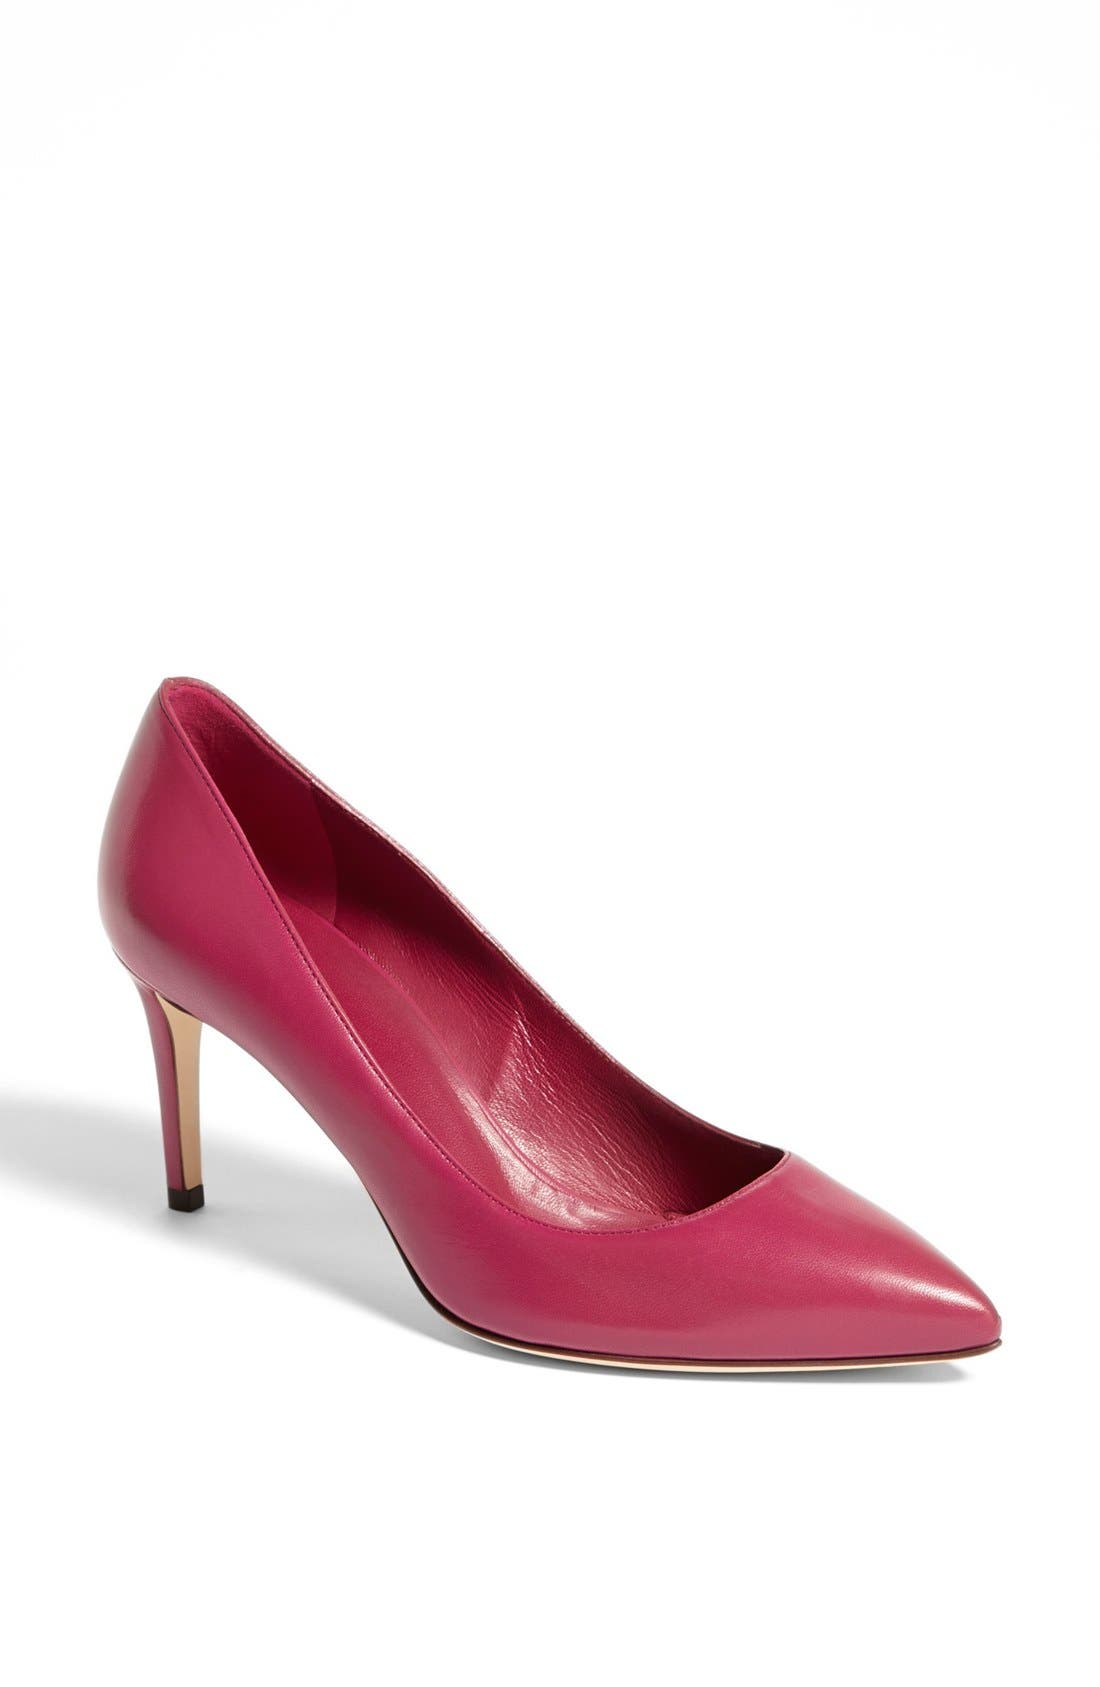 Alternate Image 1 Selected - Gucci 'Brooke' Pointed Toe Pump